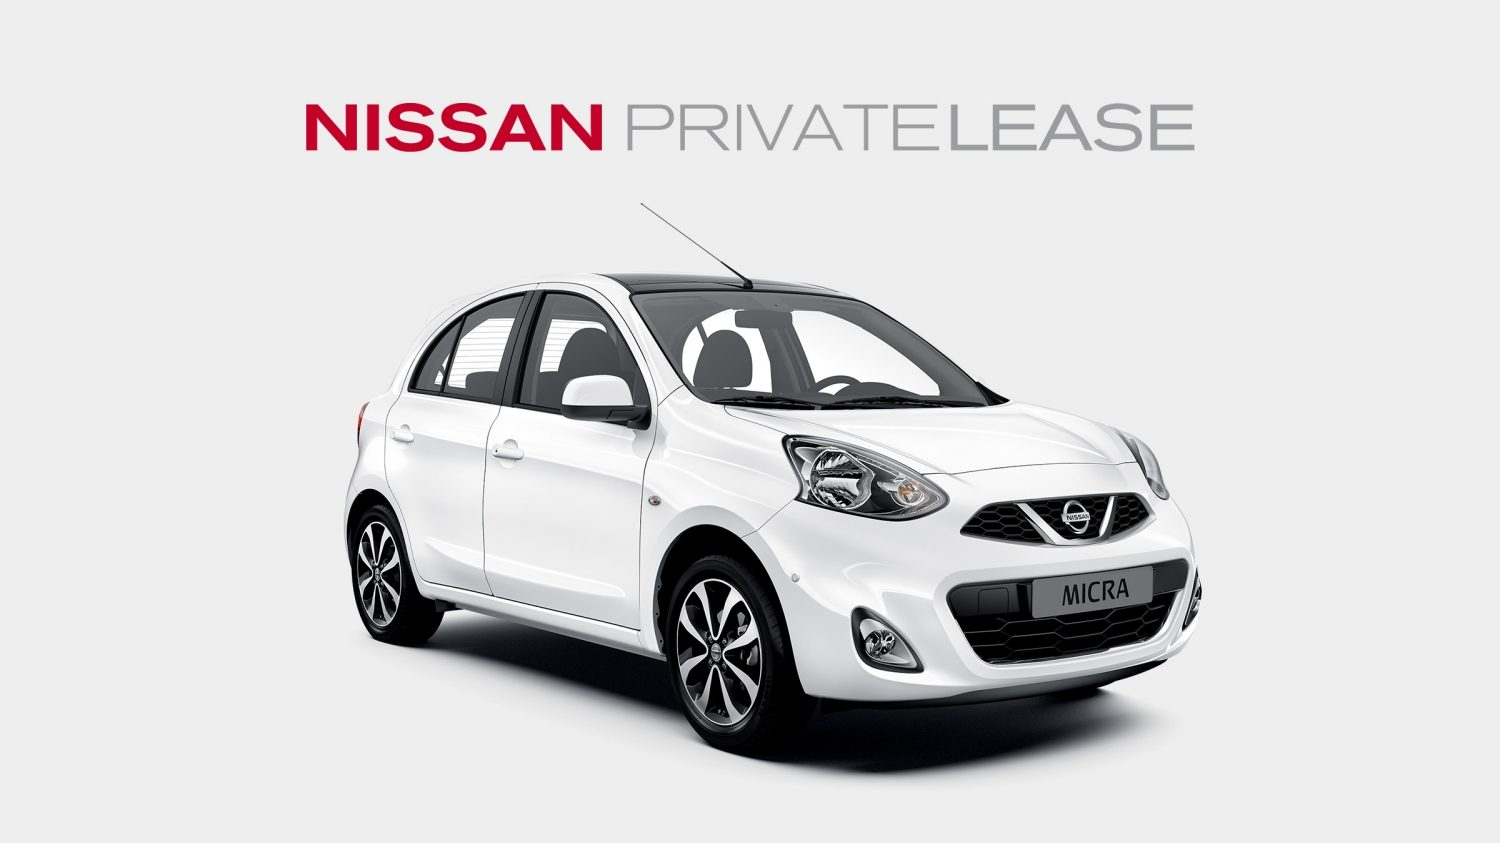 Nissan Private Lease Deals - MICRA